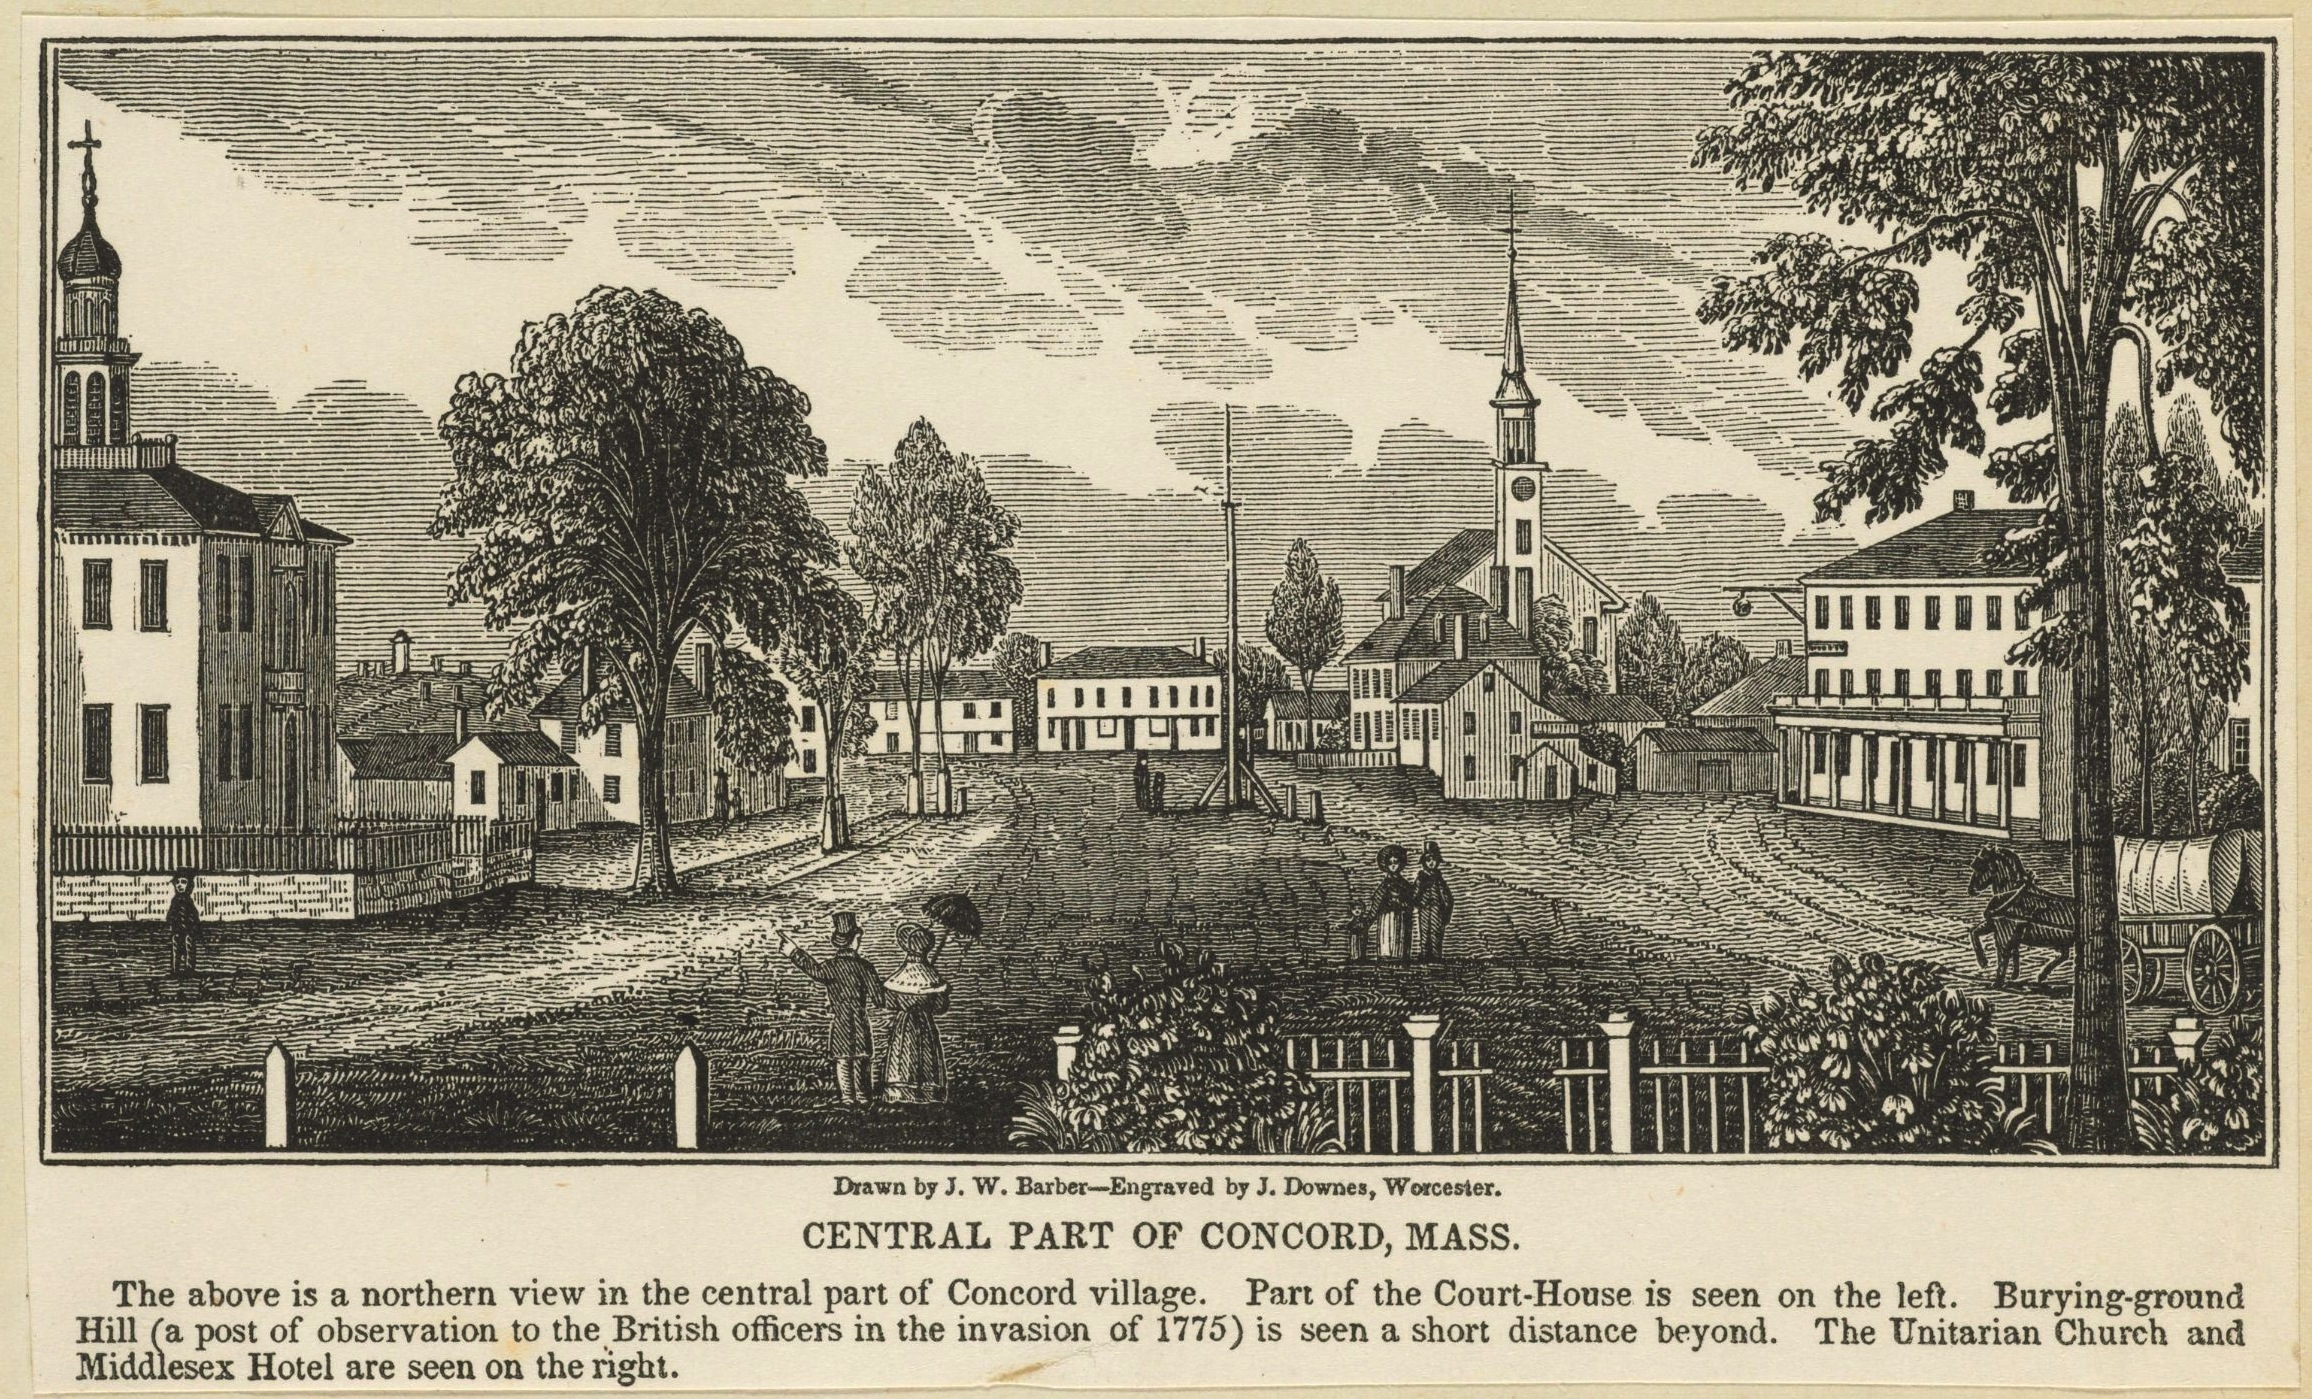 The central part of Concord, Massachusetts, 1775.